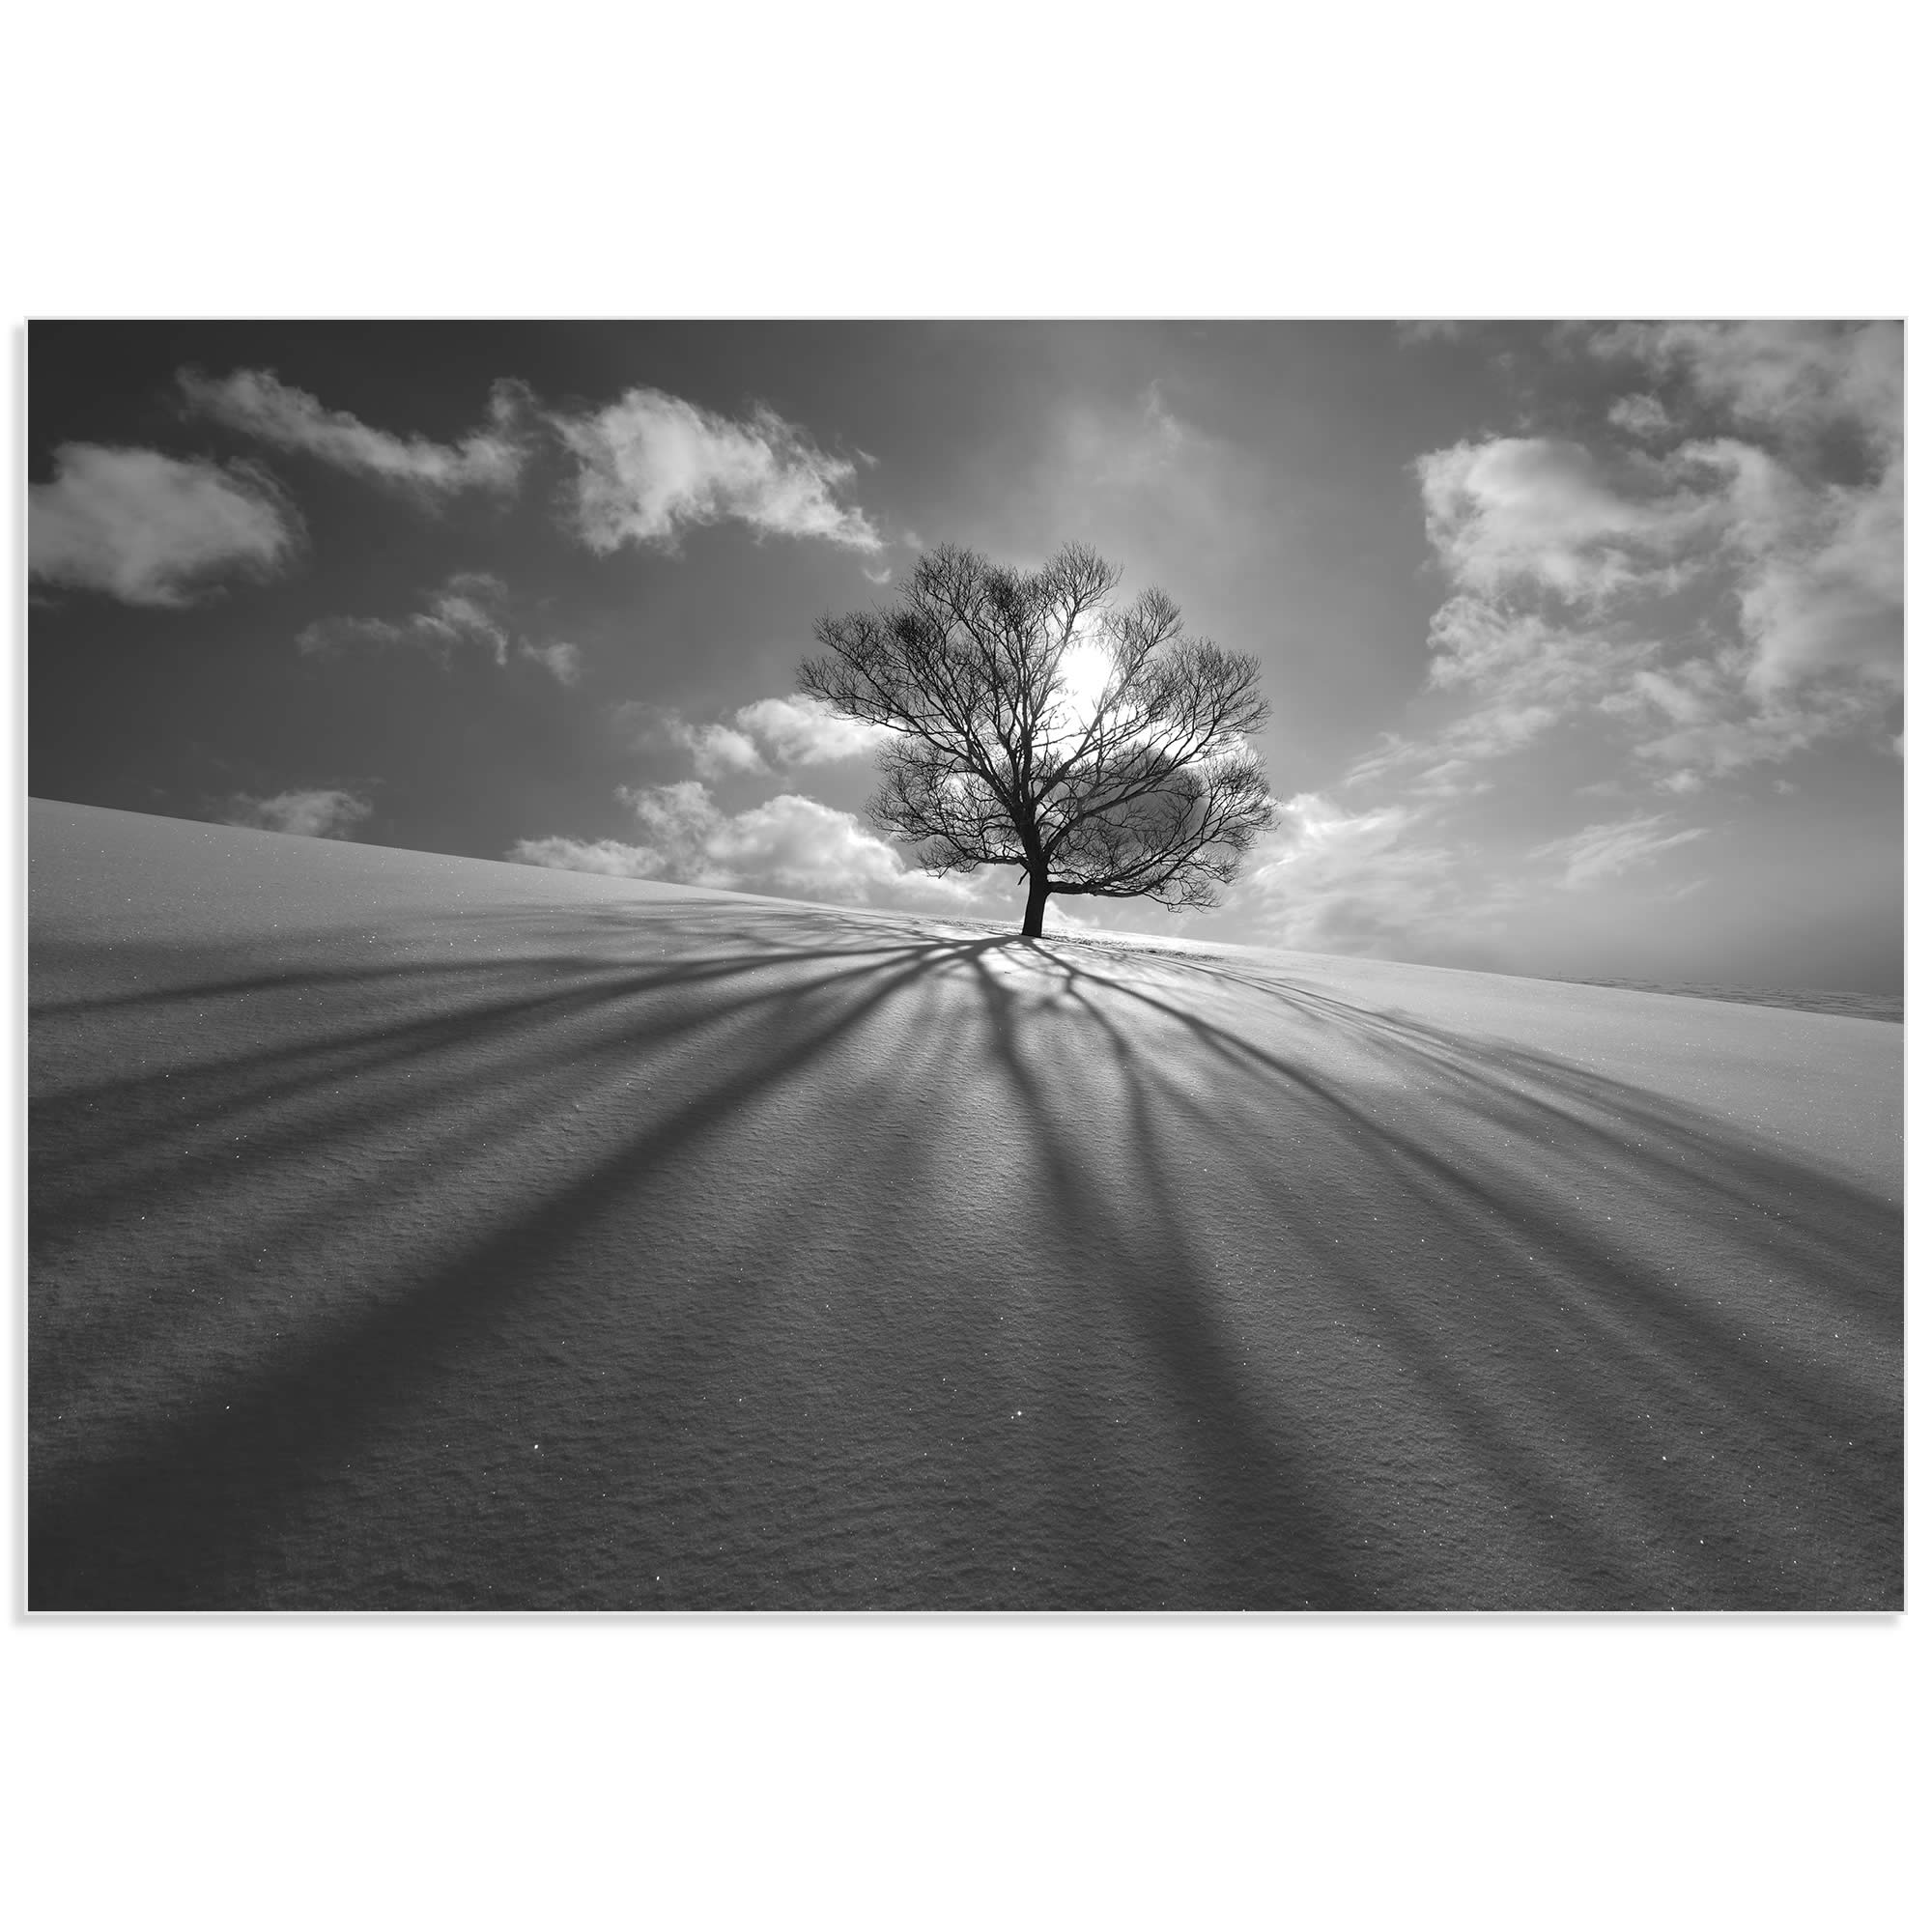 Tree Shadow by Kengo Shibutani - Dramatic Photography on Metal or Acrylic - Alternate View 2